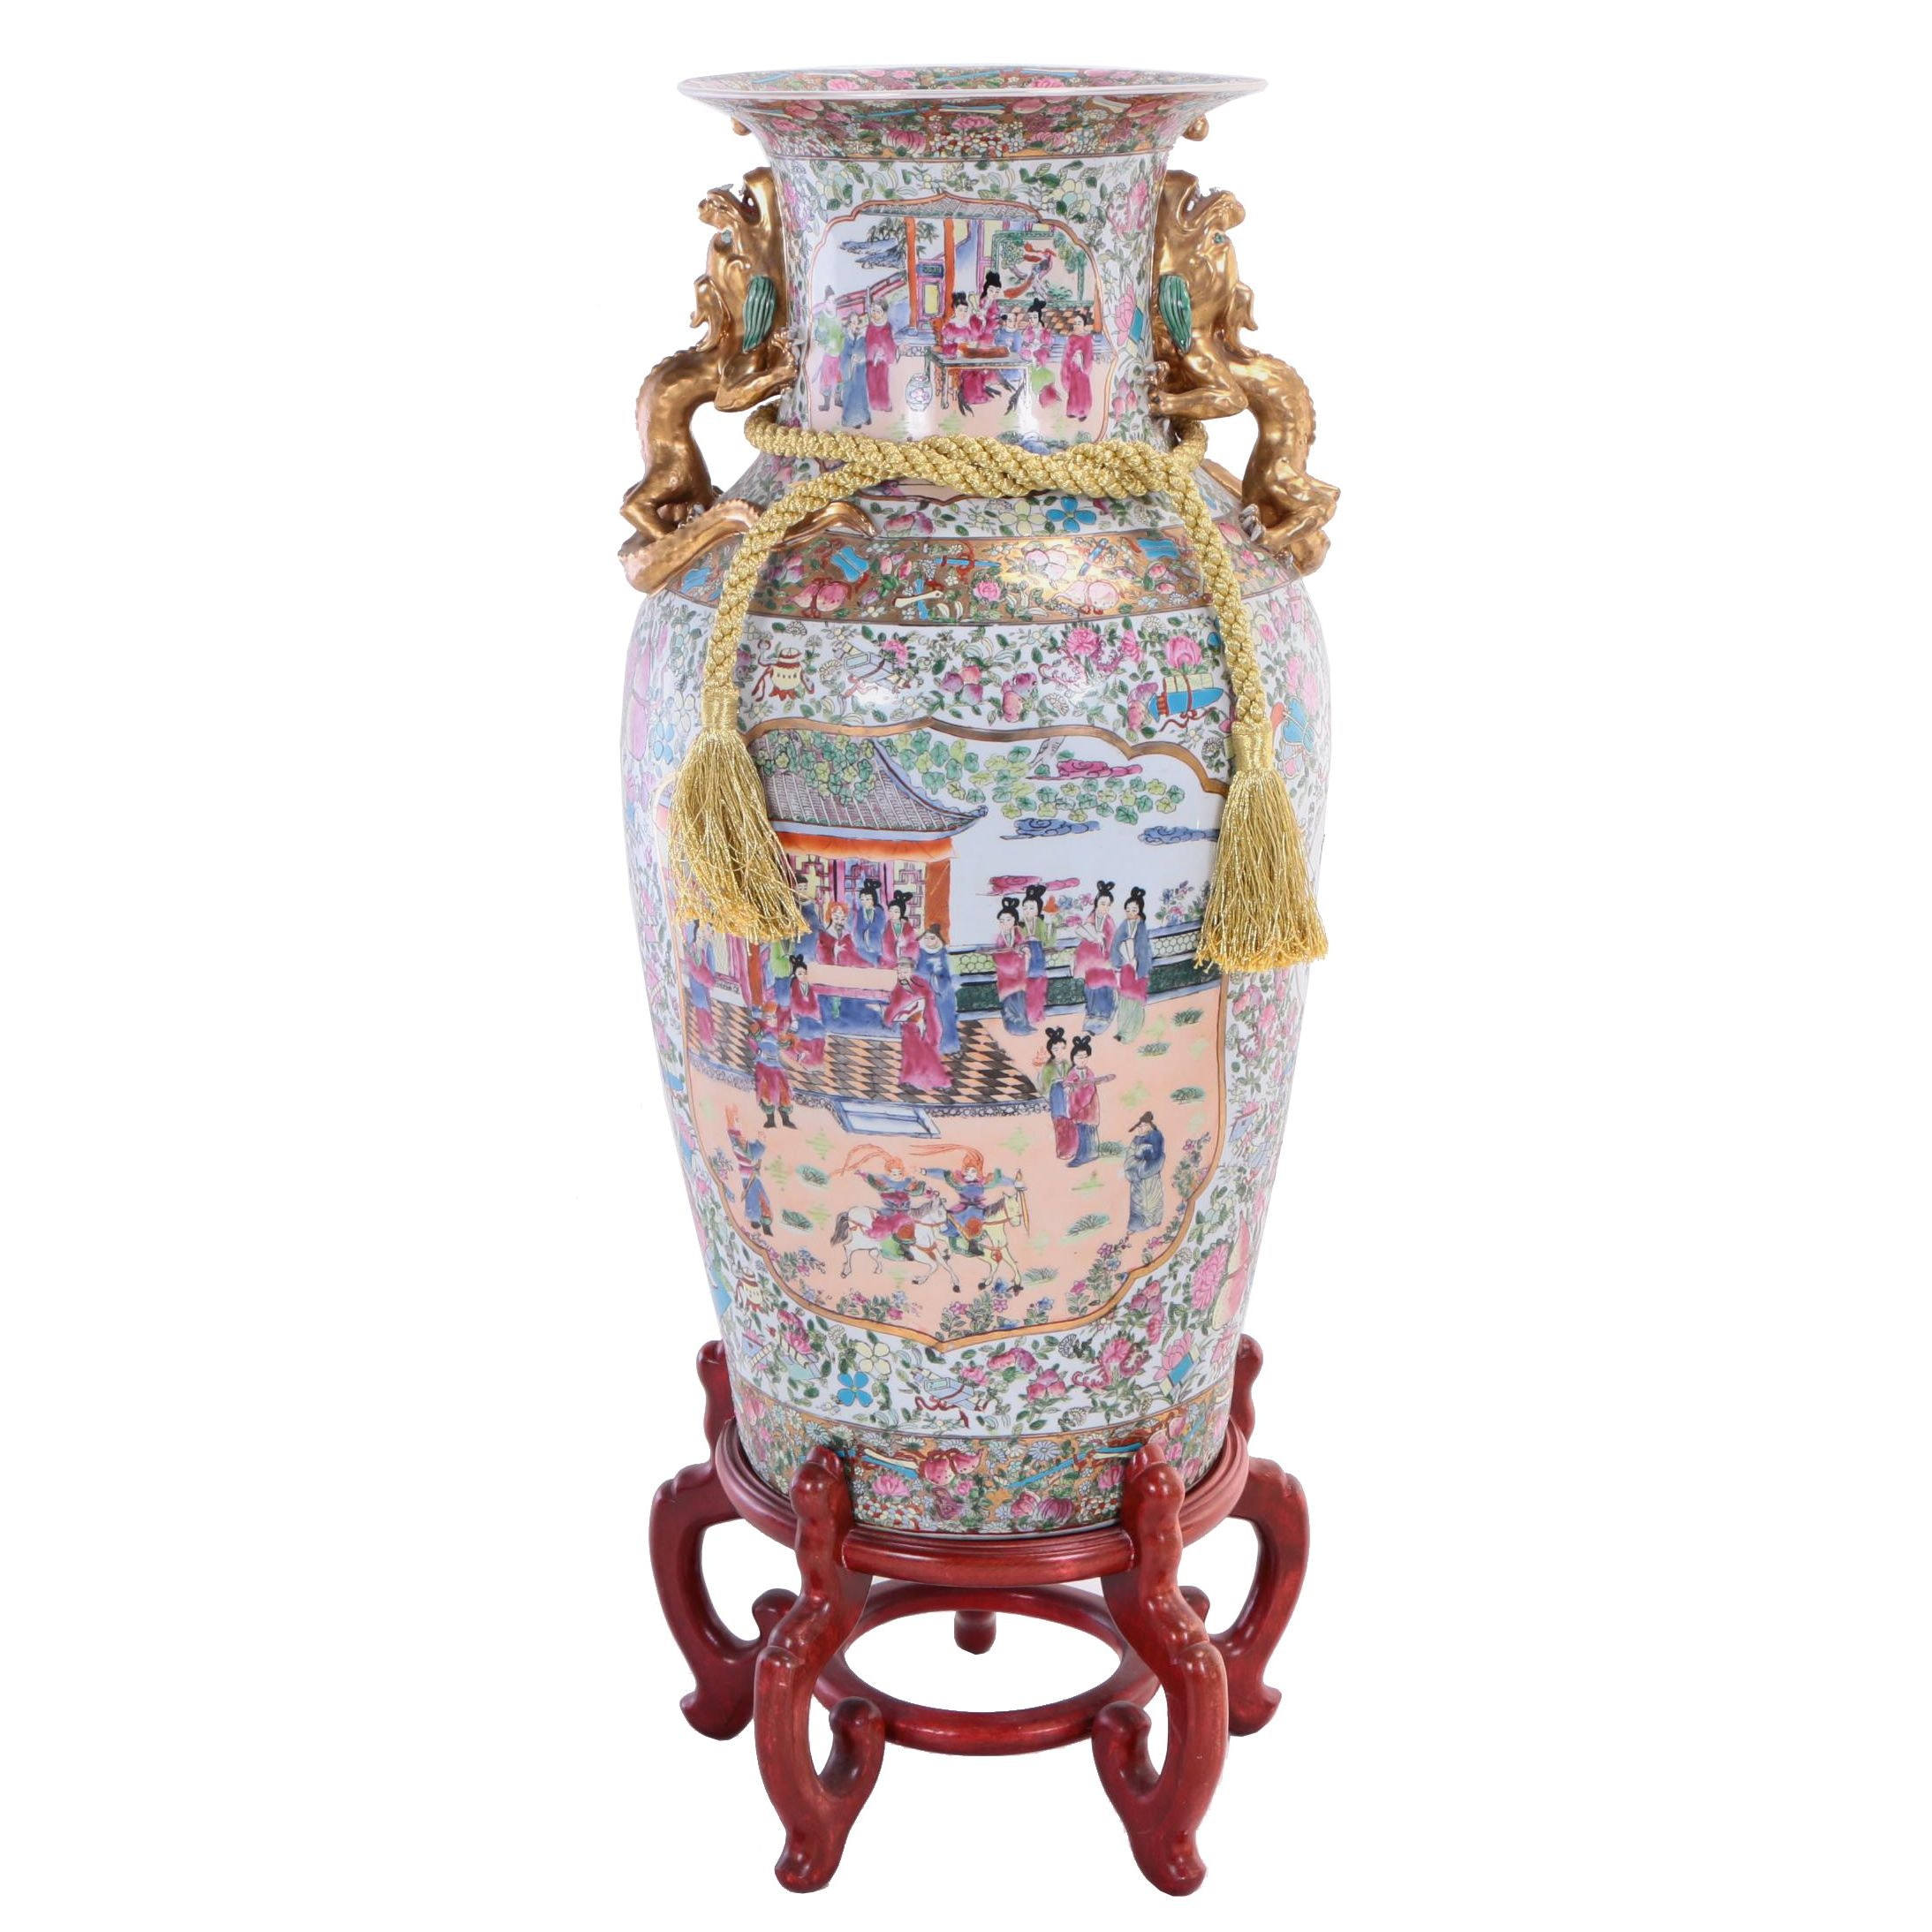 Chinese Parcel-Gilt and Enameled Ceramic Palace Vase with Wooden Stand